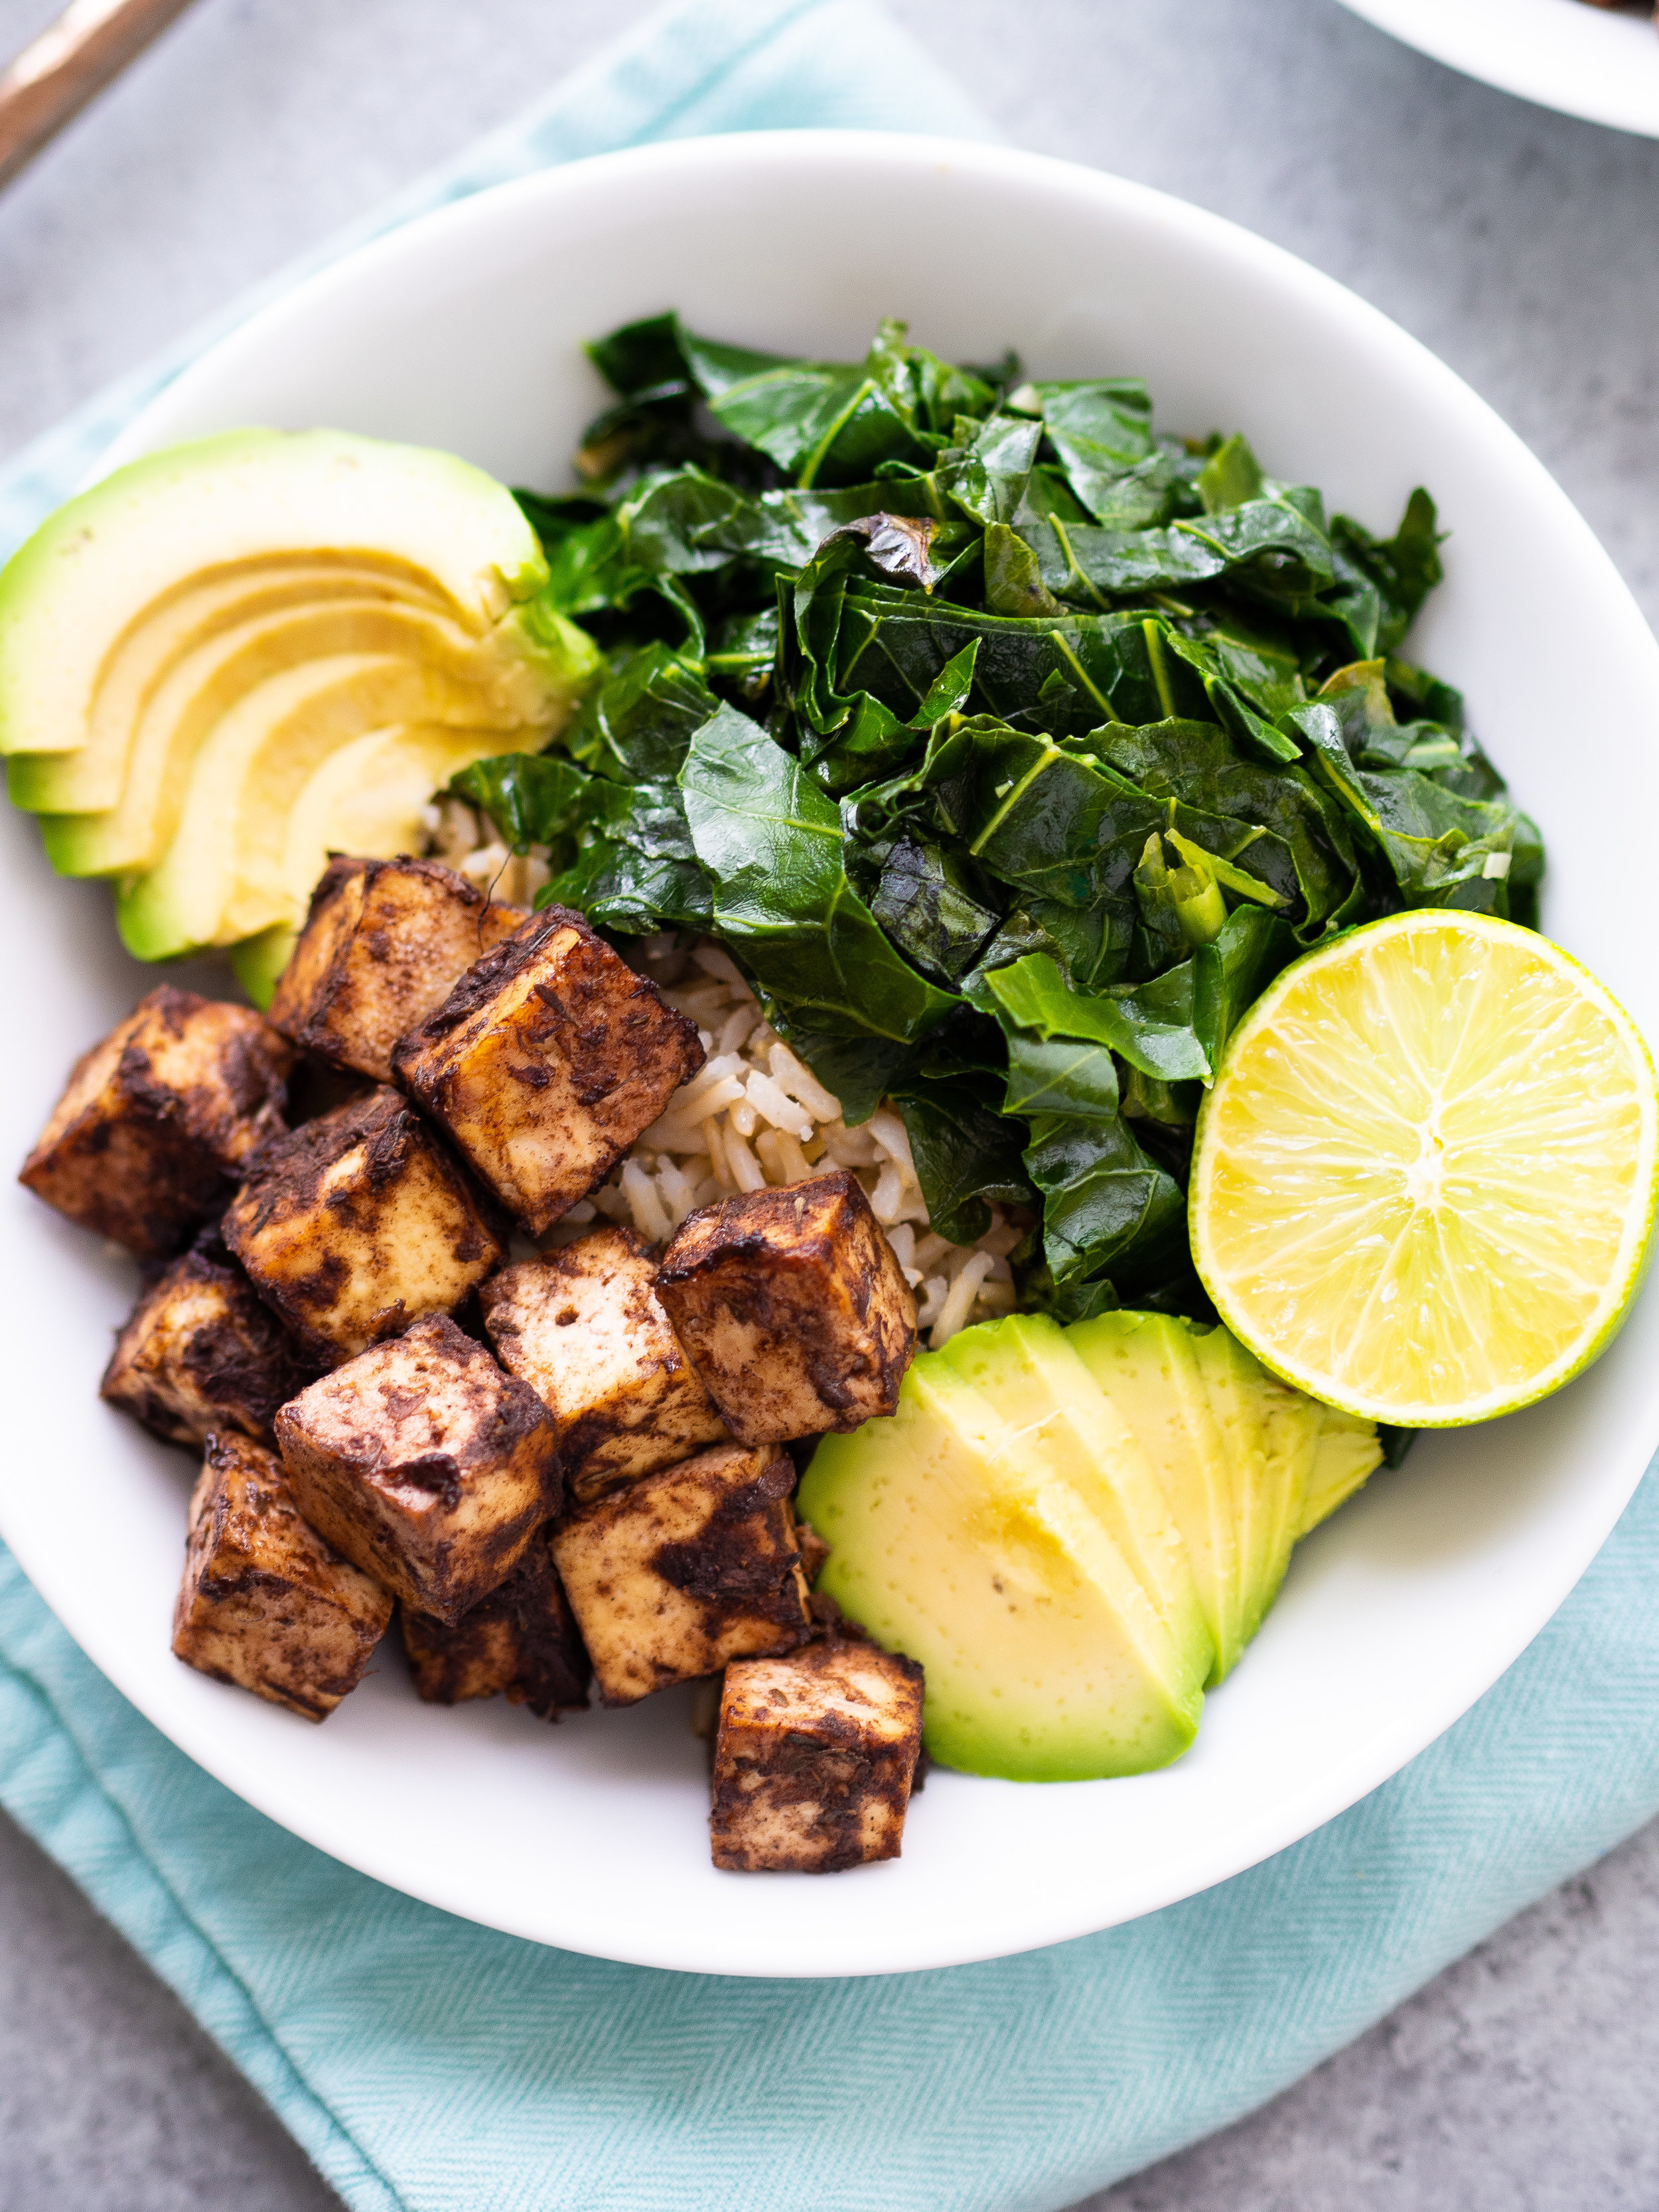 the easy jerk tofu bowl is great with collards or other greens #vegetarian #tofu #grainbowl #healthydinner #healthyfood #bowlrecipe